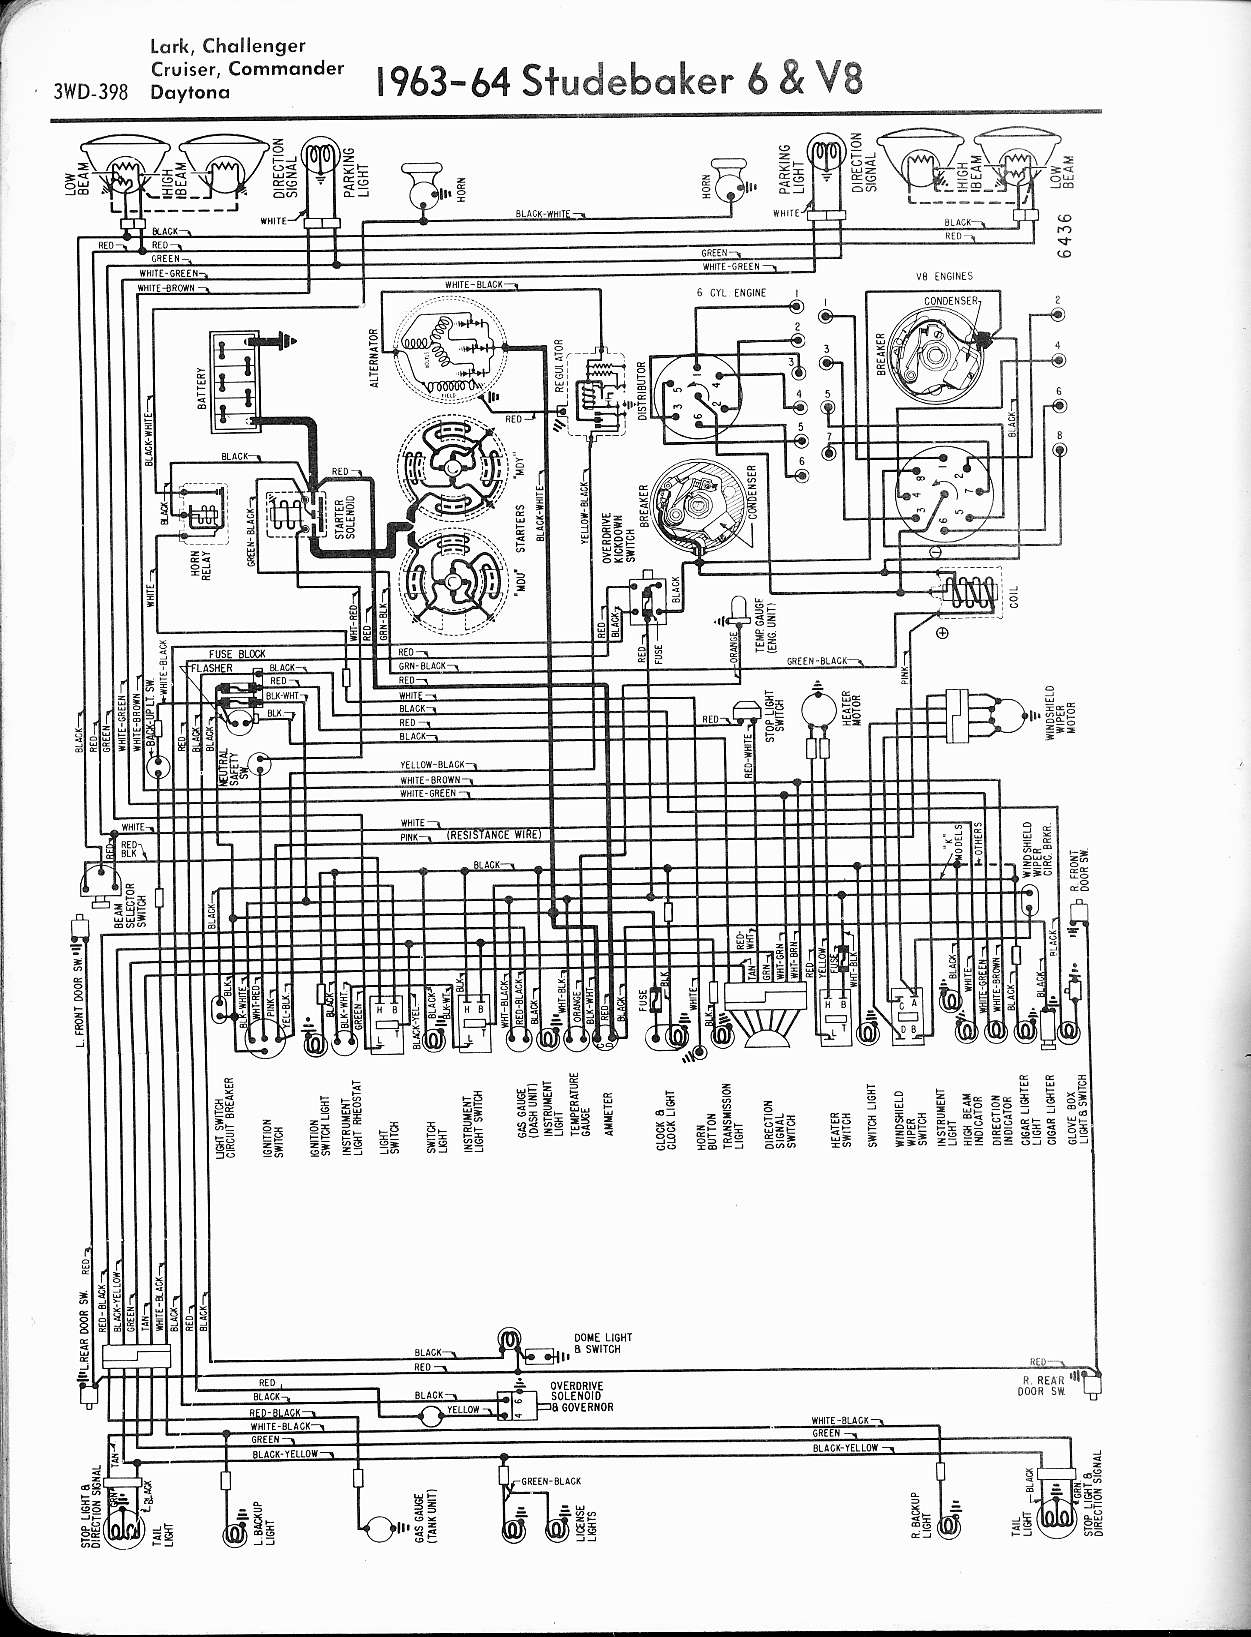 DIAGRAM] 1951 Studebaker Wiring Diagram FULL Version HD Quality Wiring  Diagram - ROME.PACHUKA.ITDiagram Database - pachuka.it